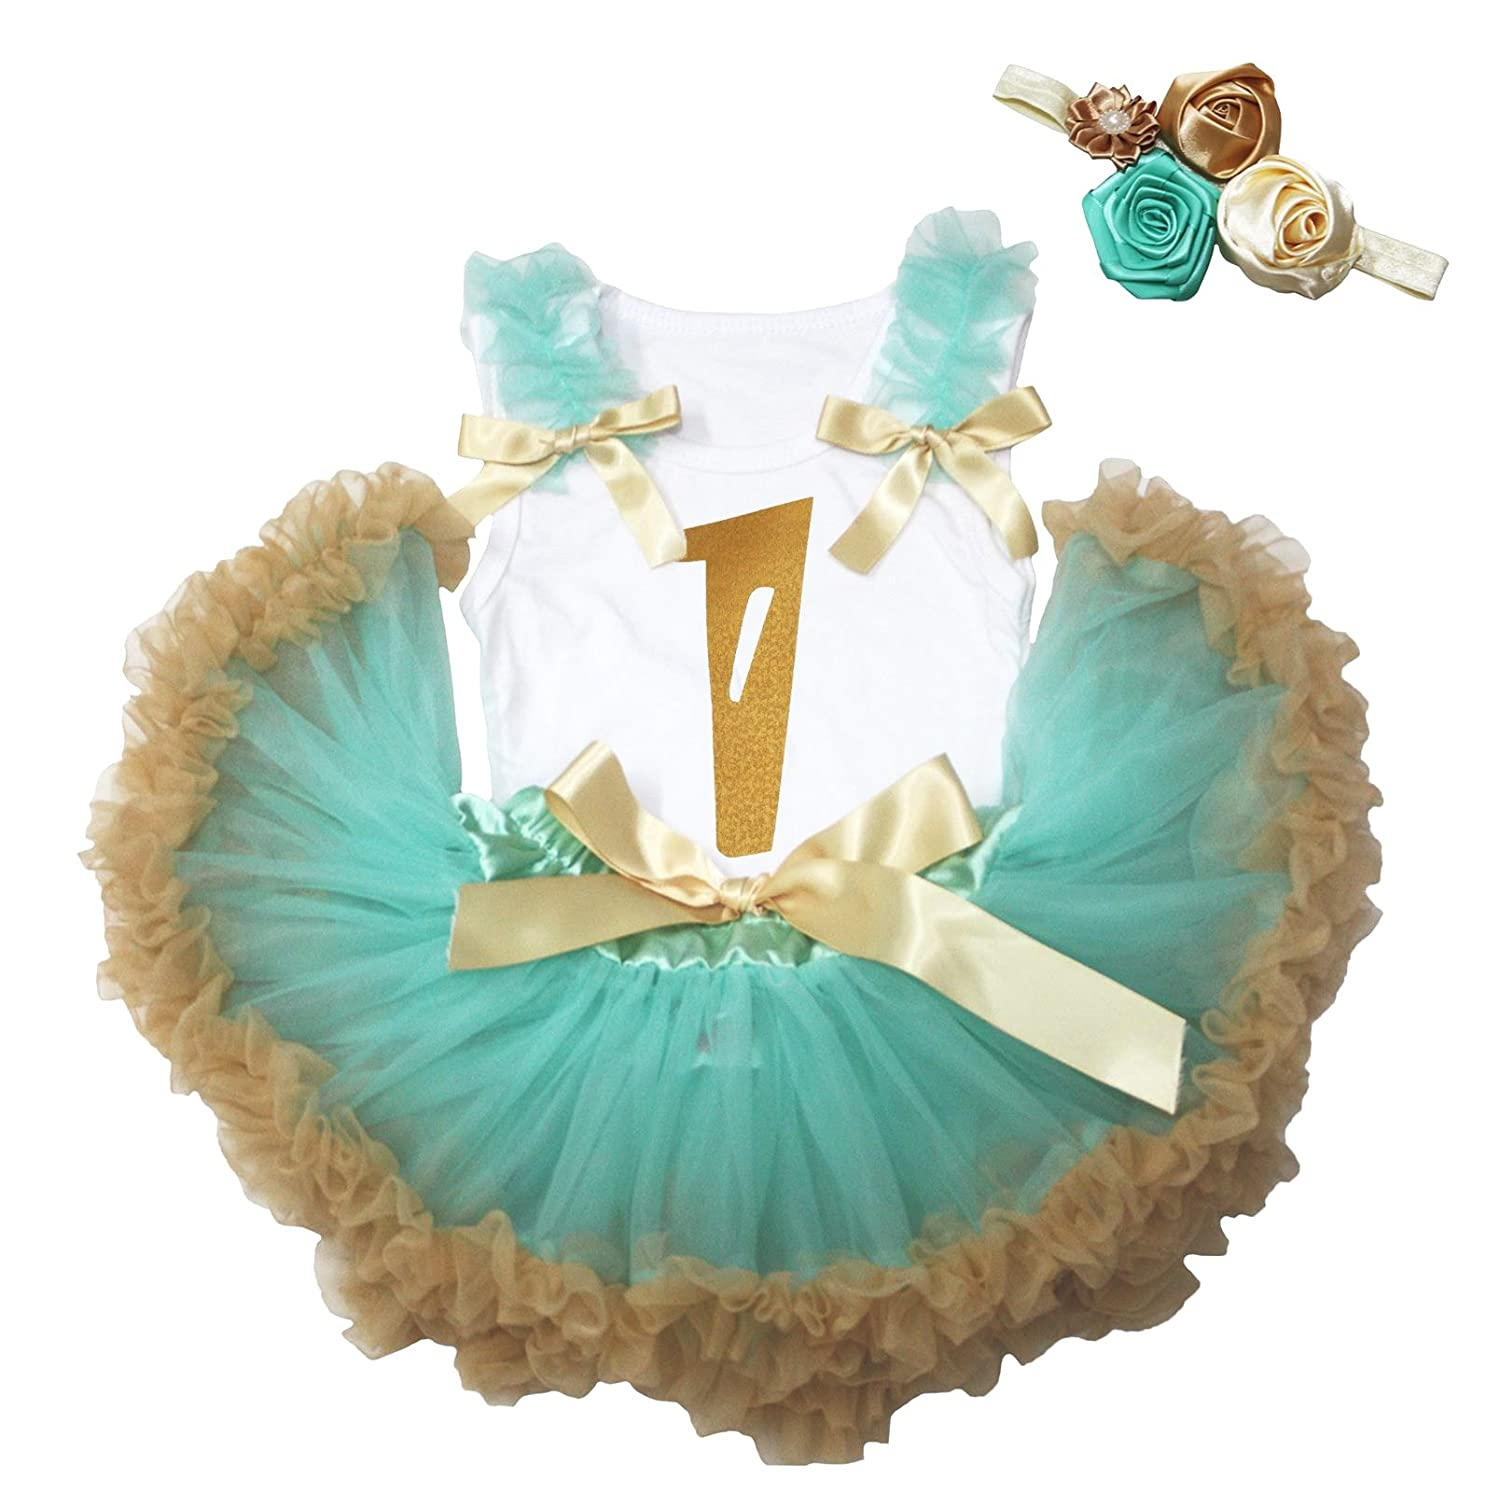 Petitebella Gold 1 White Cotton Shirt Aqua Blue Gold Skirt Outfit 3-12m NS209